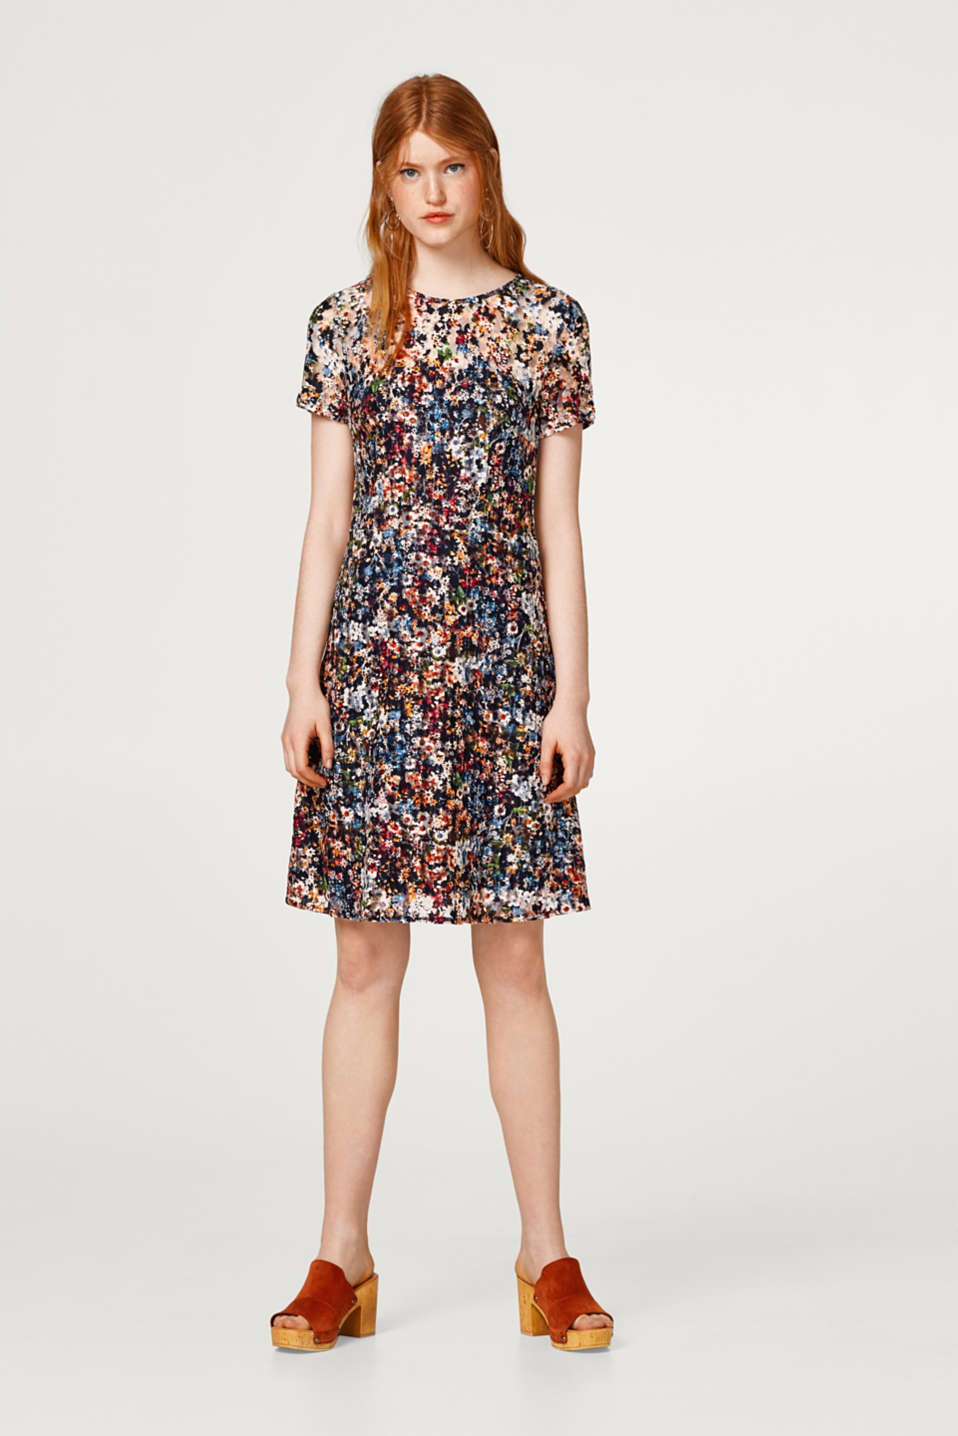 Esprit - Mesh dress with a bright floral print